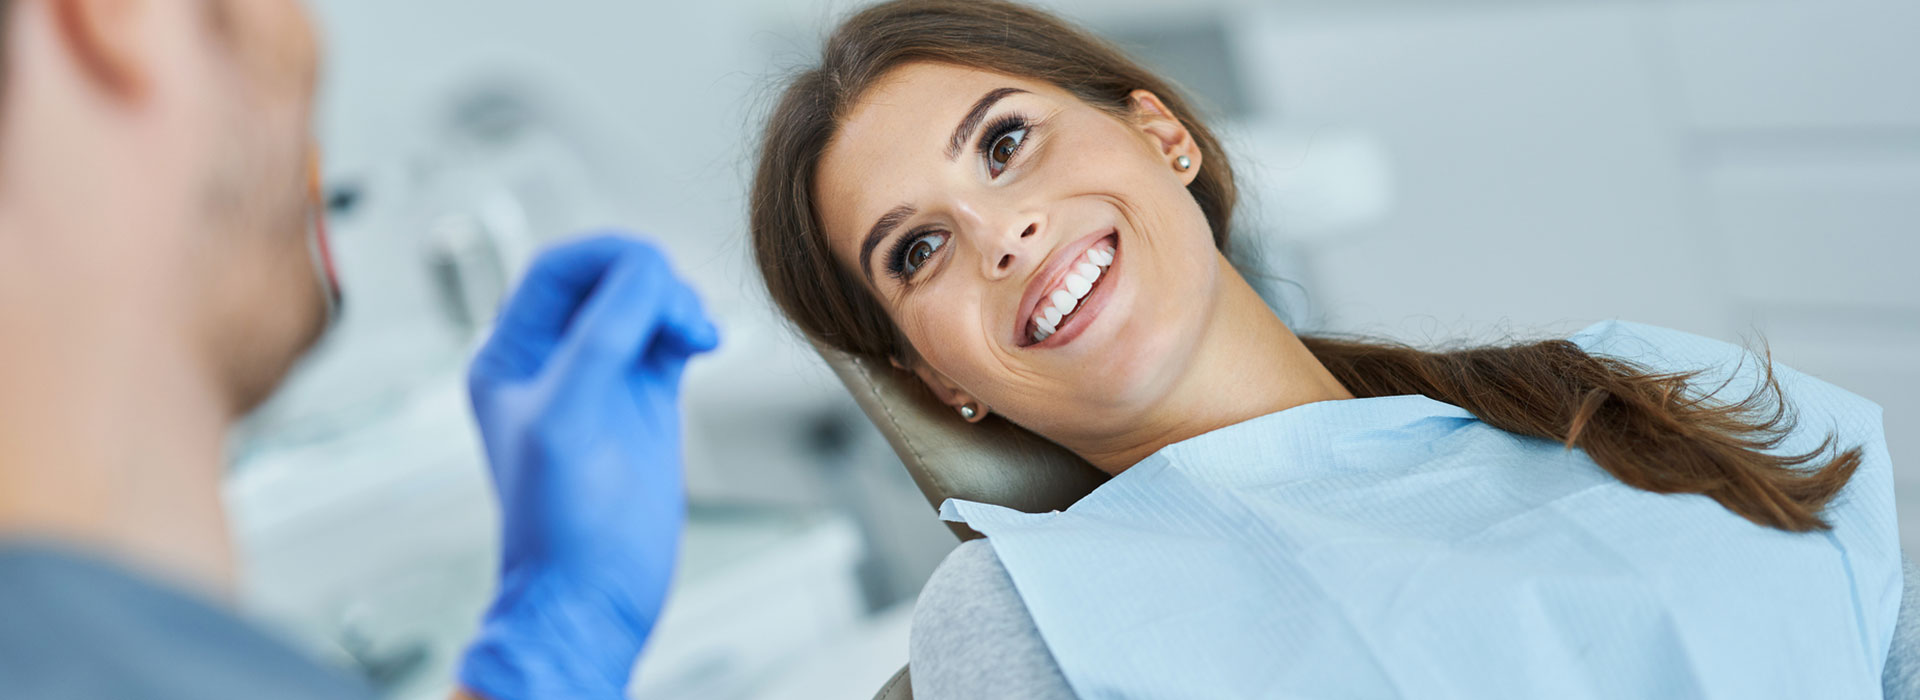 A beautiful woman is smiling after dental sealants